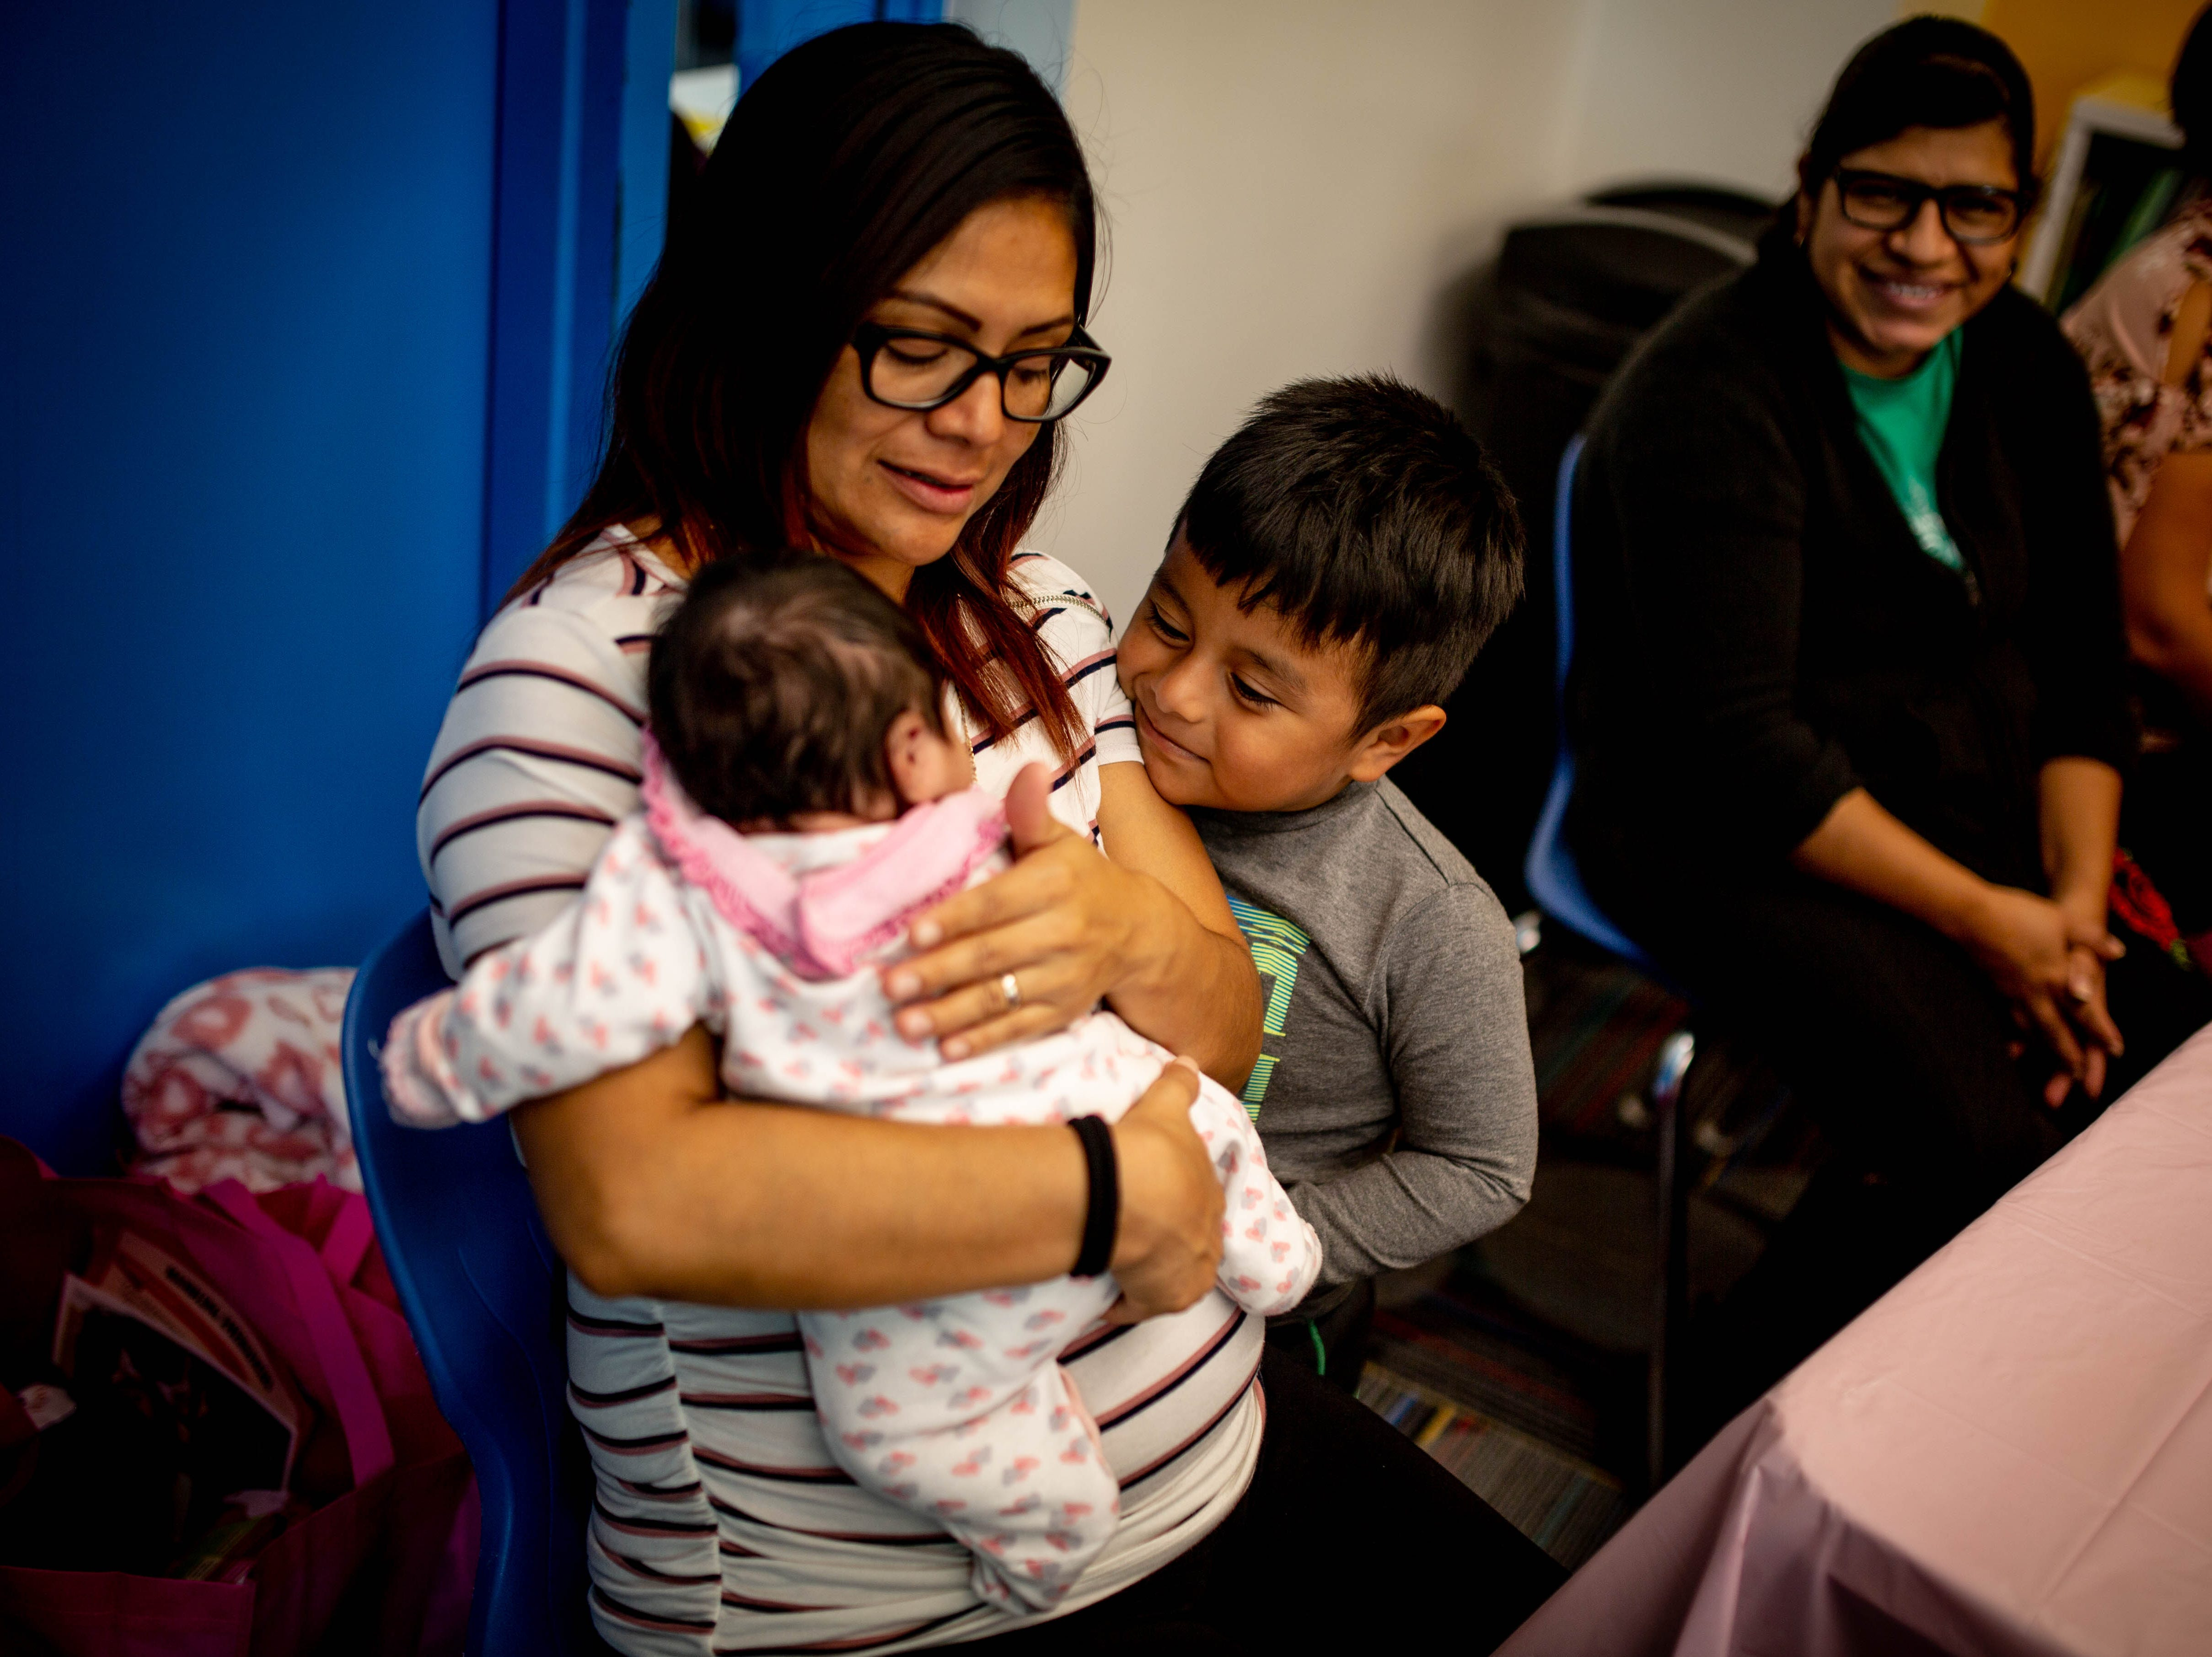 Francisca Herrera and her son Nicolas attend the Immokalee Community Baby Shower at the Boys & Girls Club in Immokalee on Thursday, May 9, 2019.